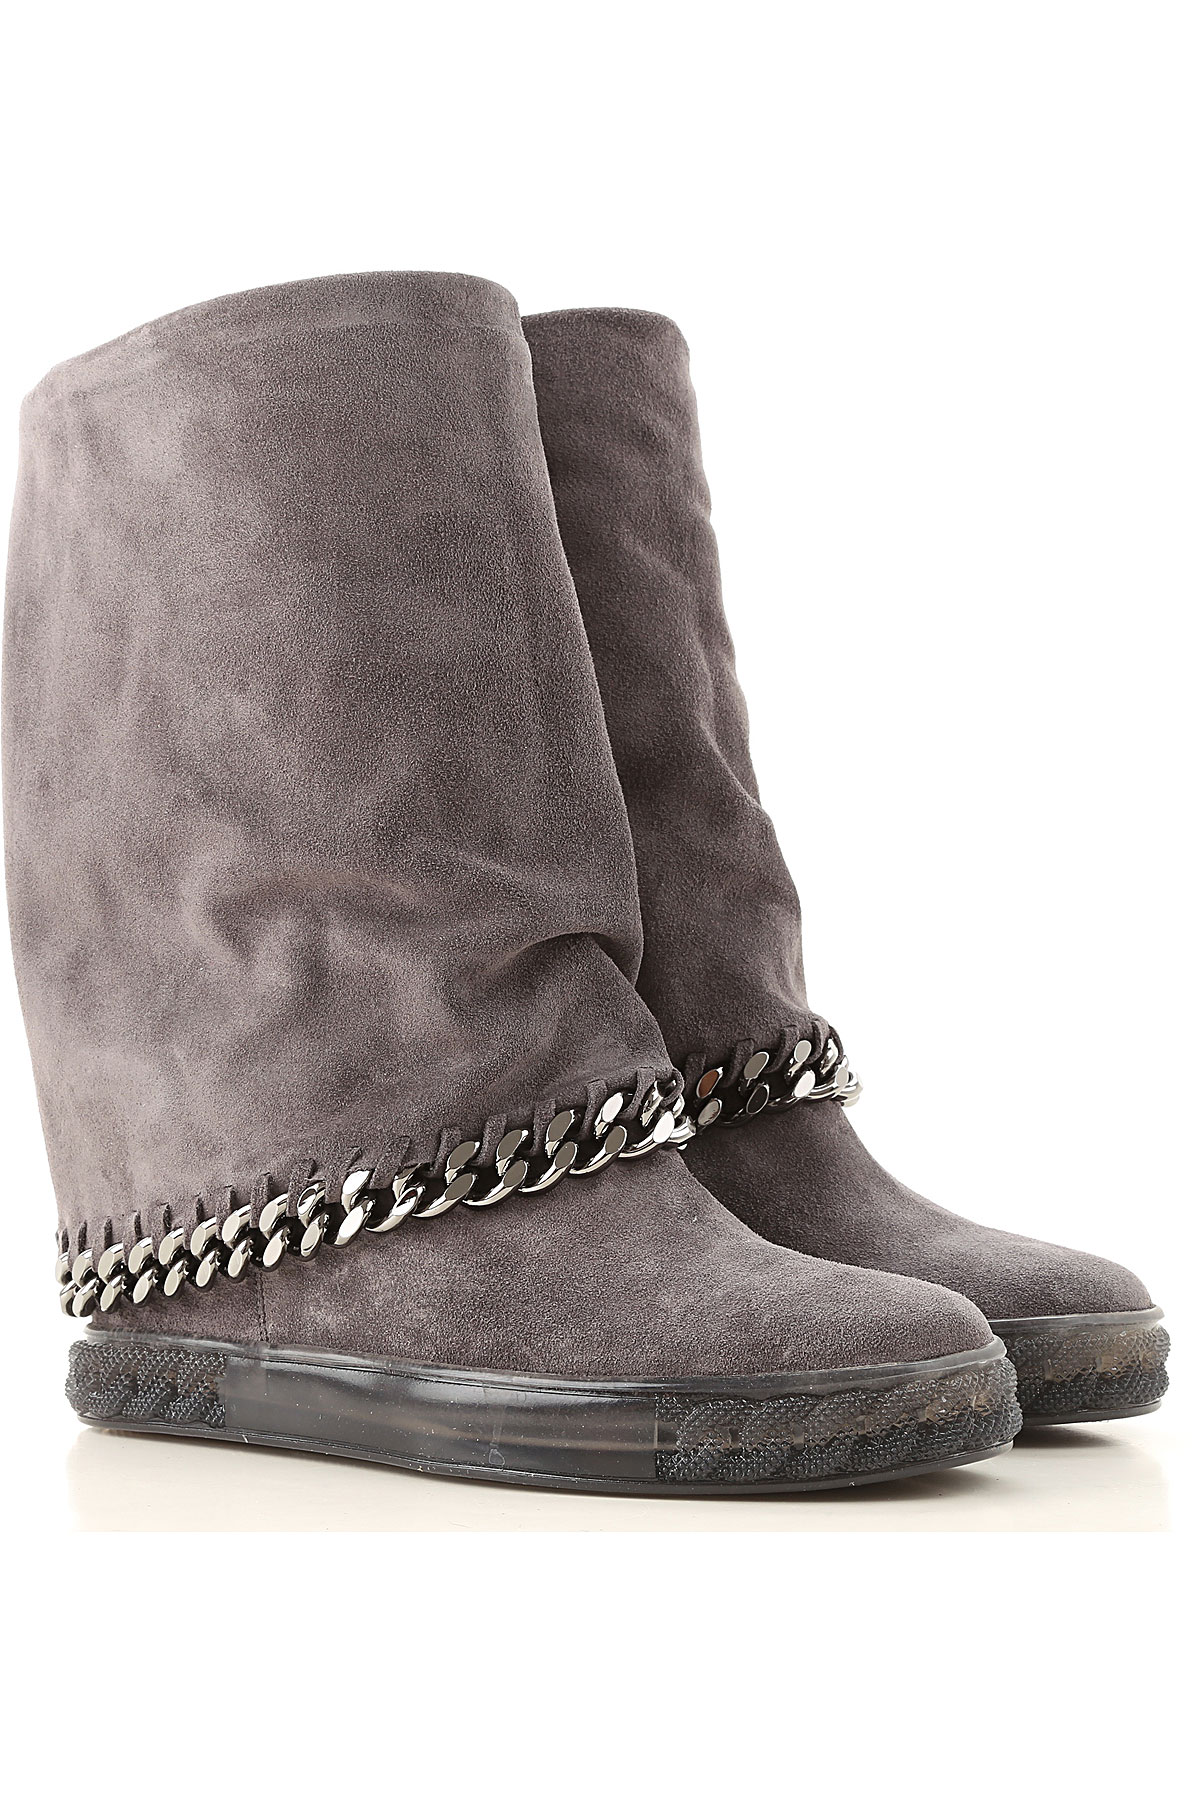 Casadei Boots for Women, Booties On Sale, Rock Grey, Suede leather, 2019, 10 11 6 6.5 8 8.5 9